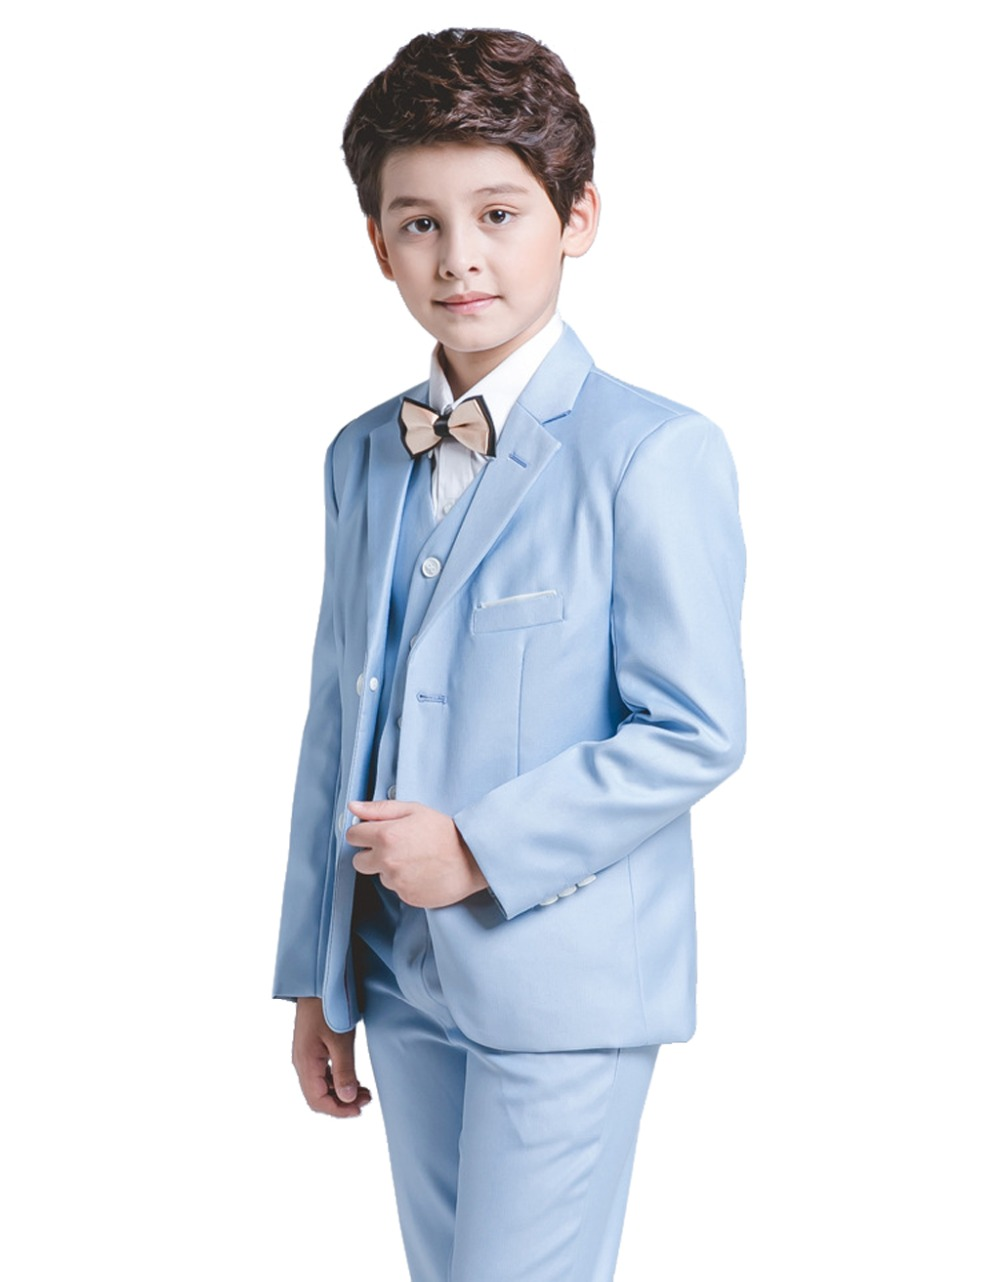 5 Piece Boys Blue Suits Slim Fit Ring Bearer Suit For Boys Formal Classic Costume Weddings цена 2017